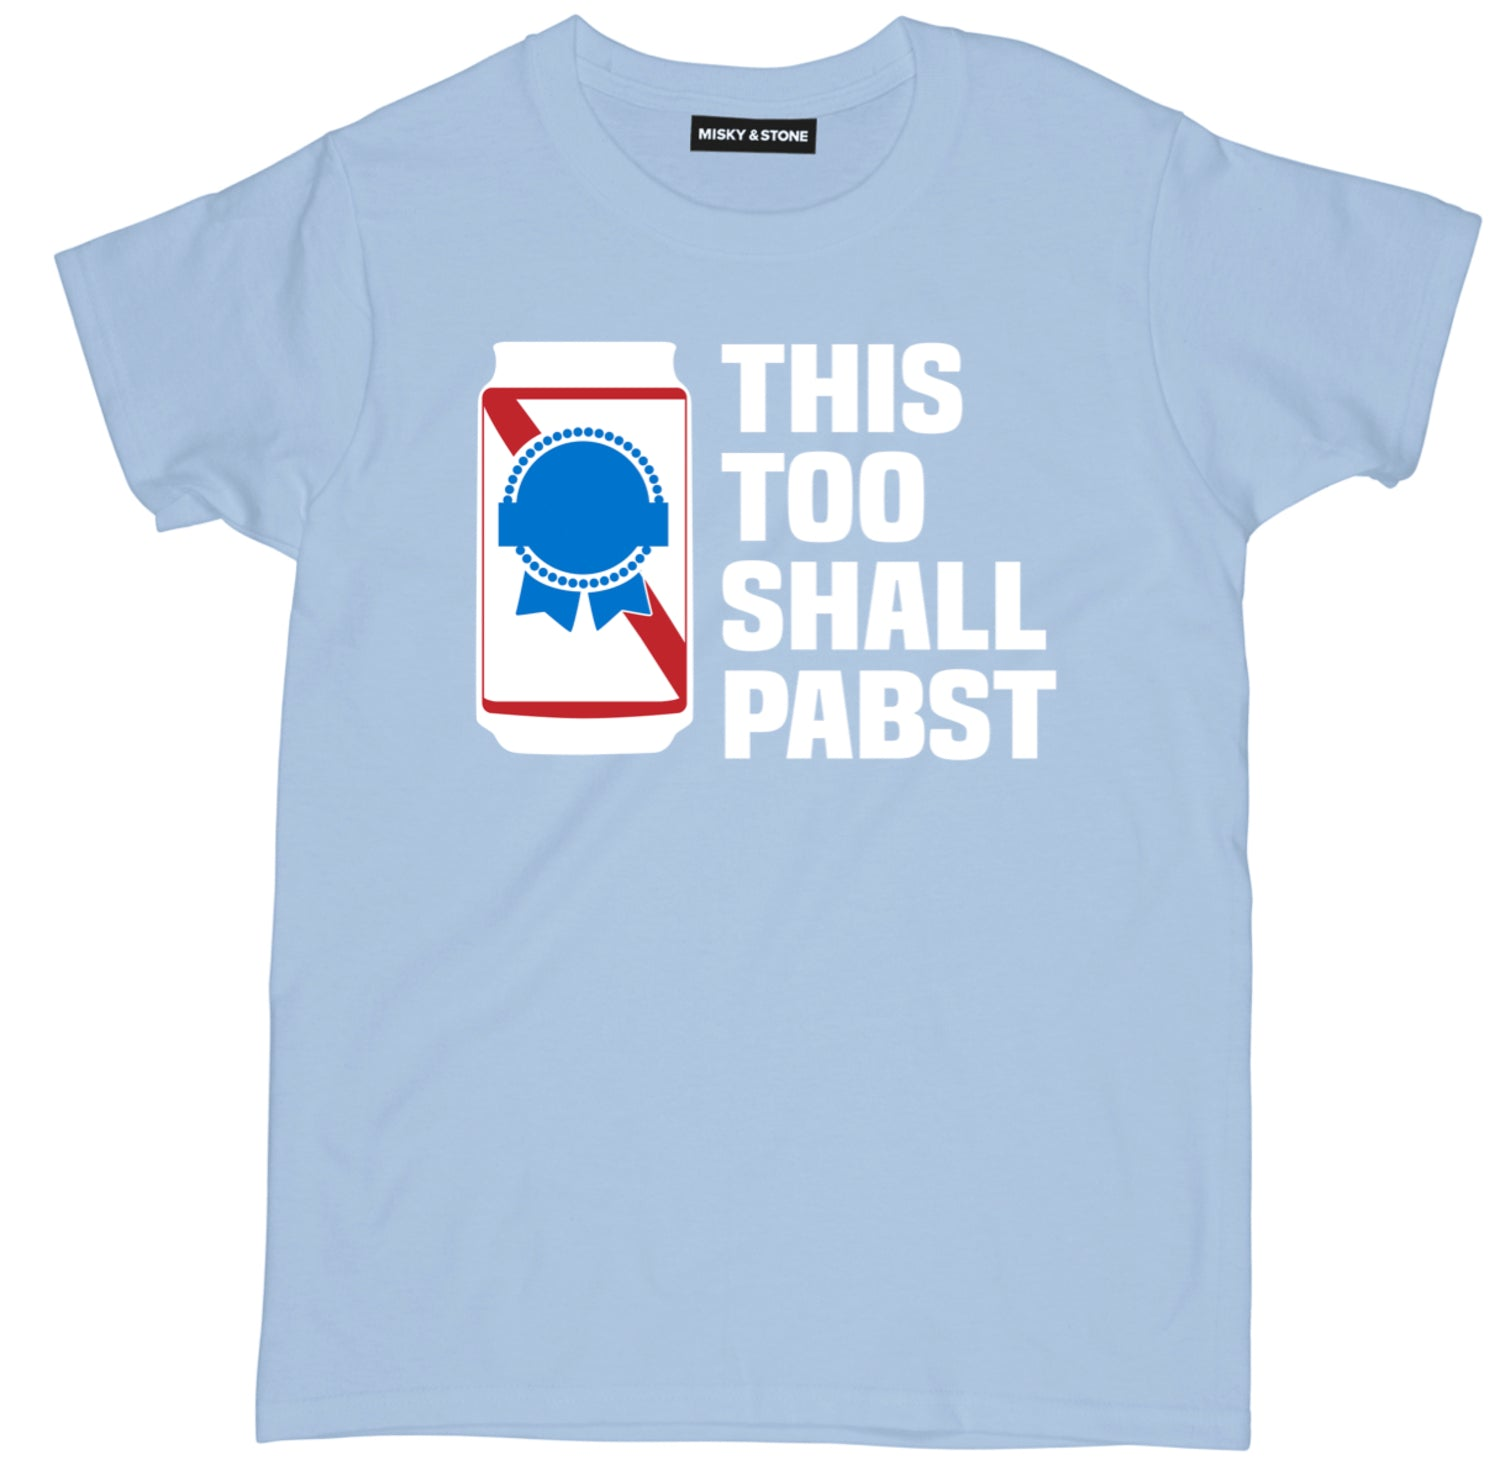 This Too Shall Pabst Tee